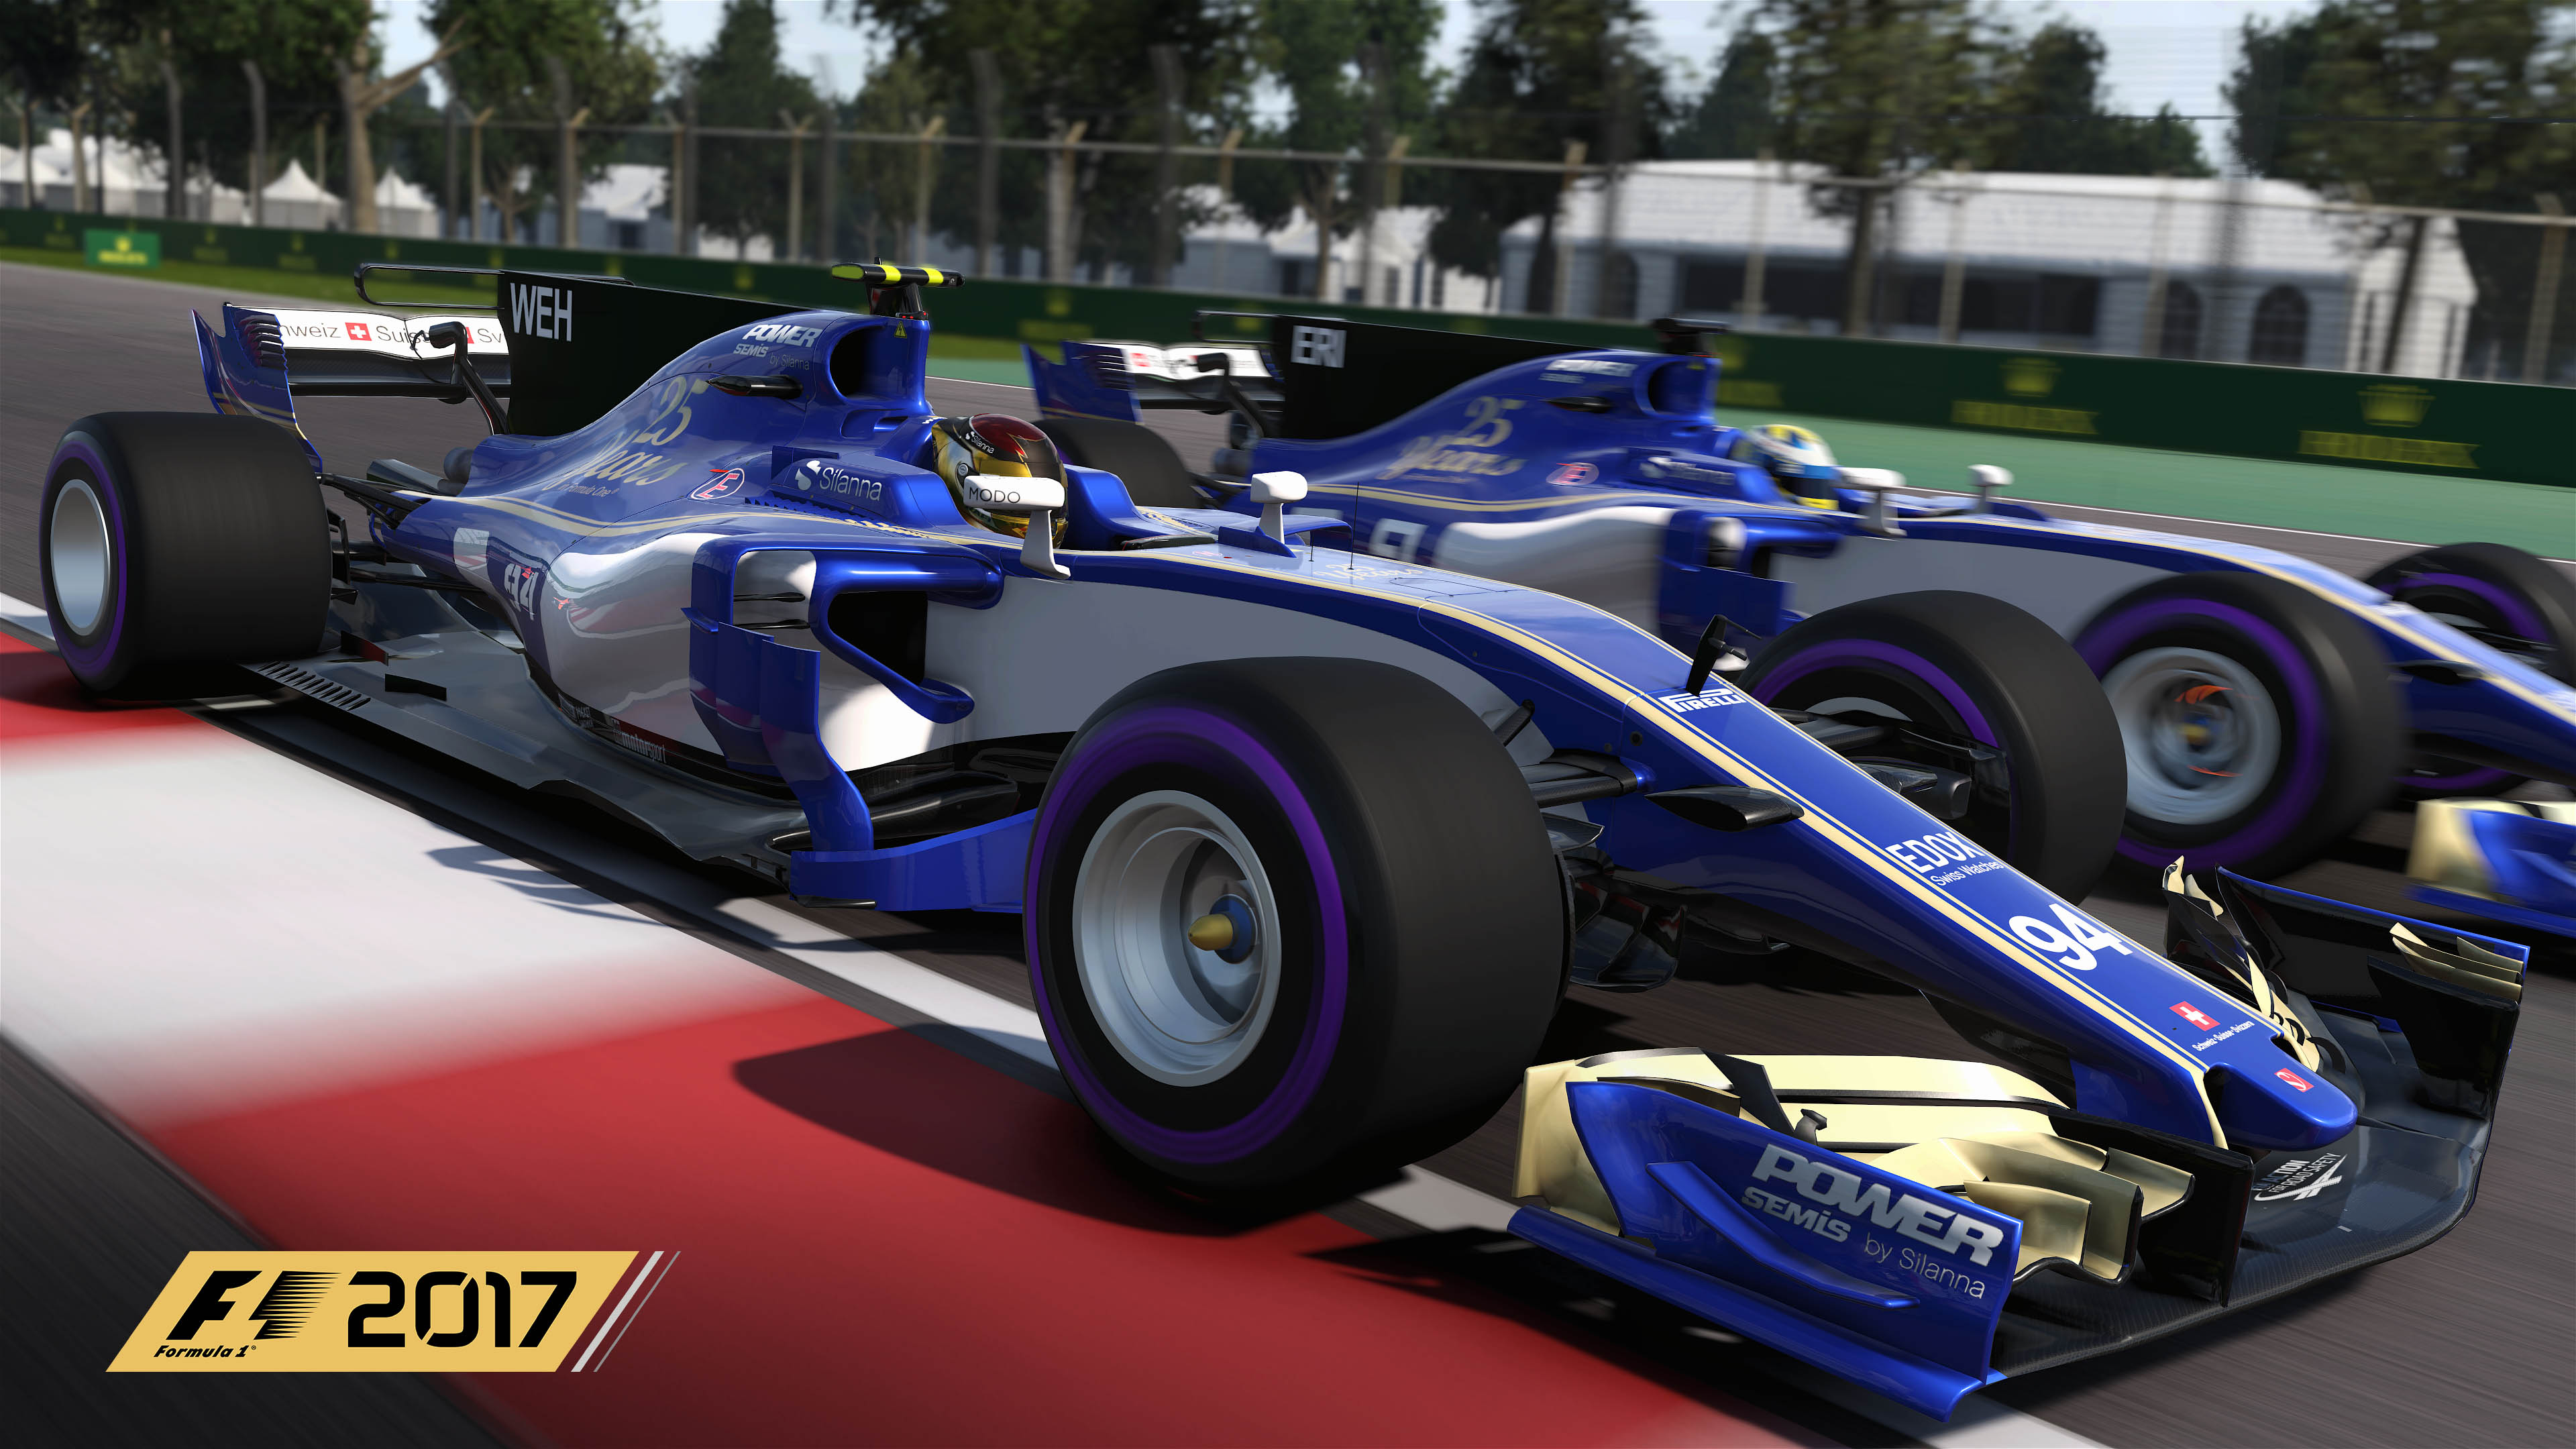 F1 2017 new liveries 9